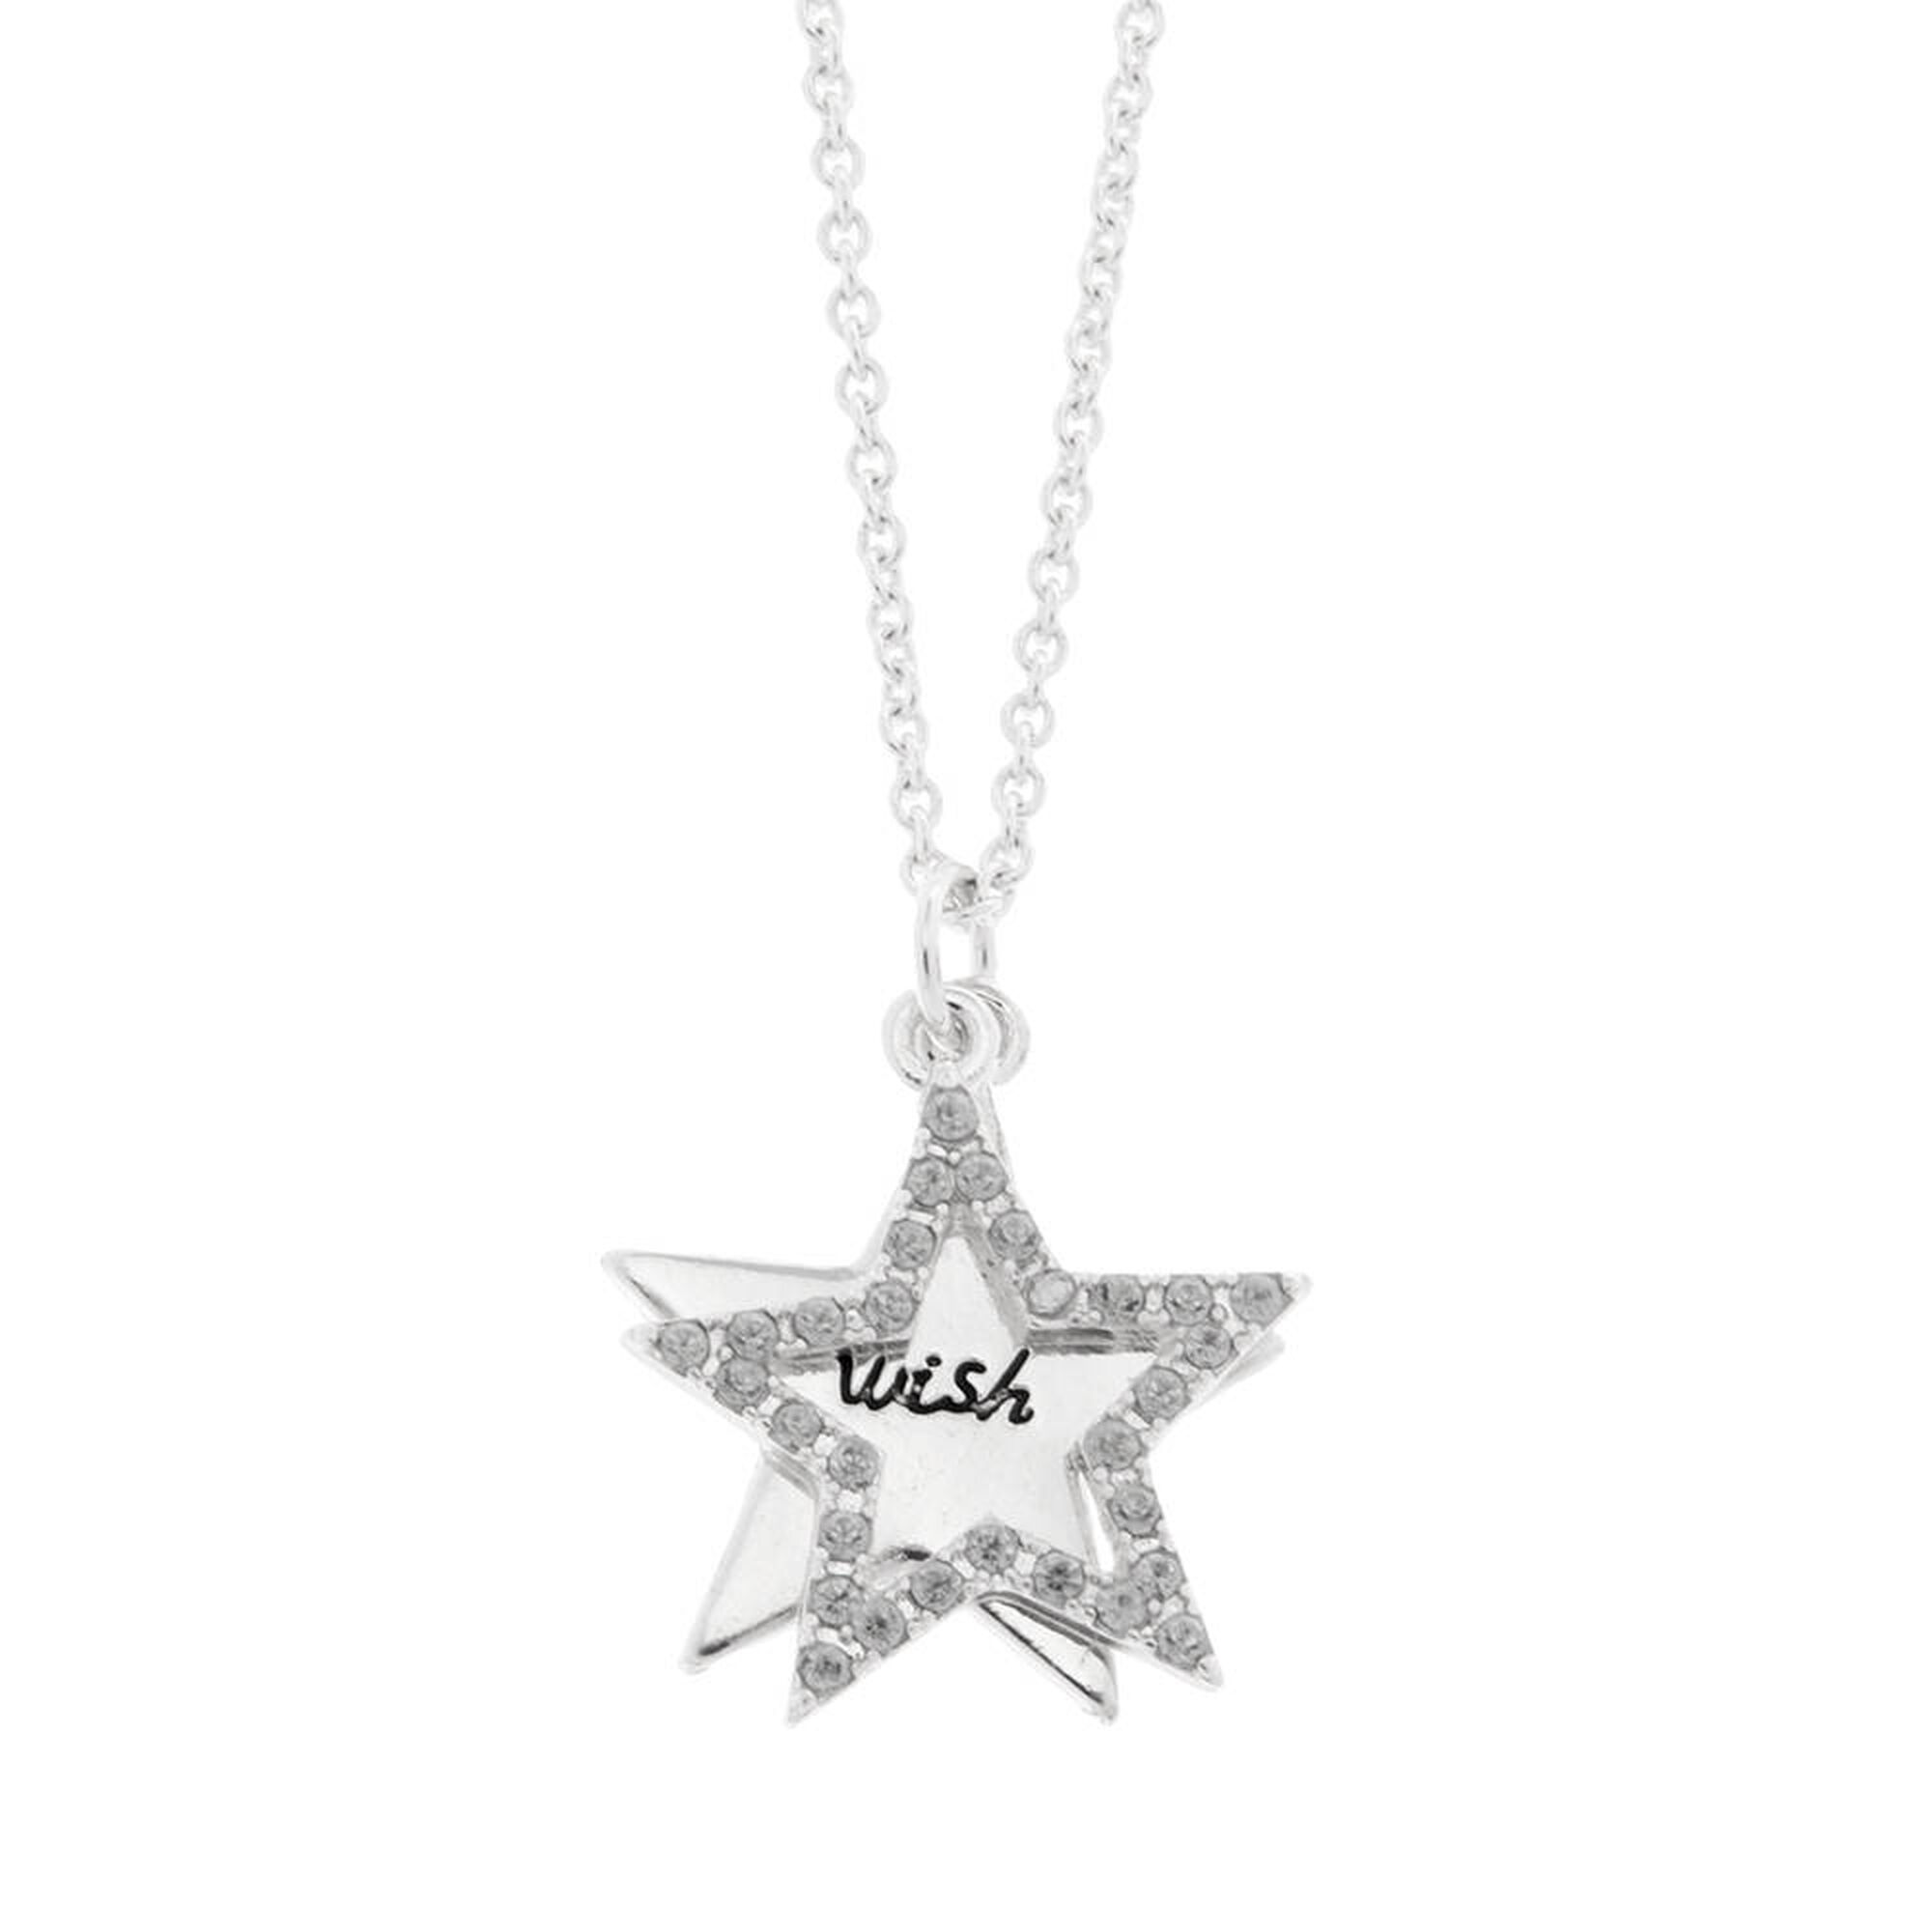 Wish and crystal outline double star pendant necklace claires us wish and crystal outline double star pendant necklace aloadofball Gallery